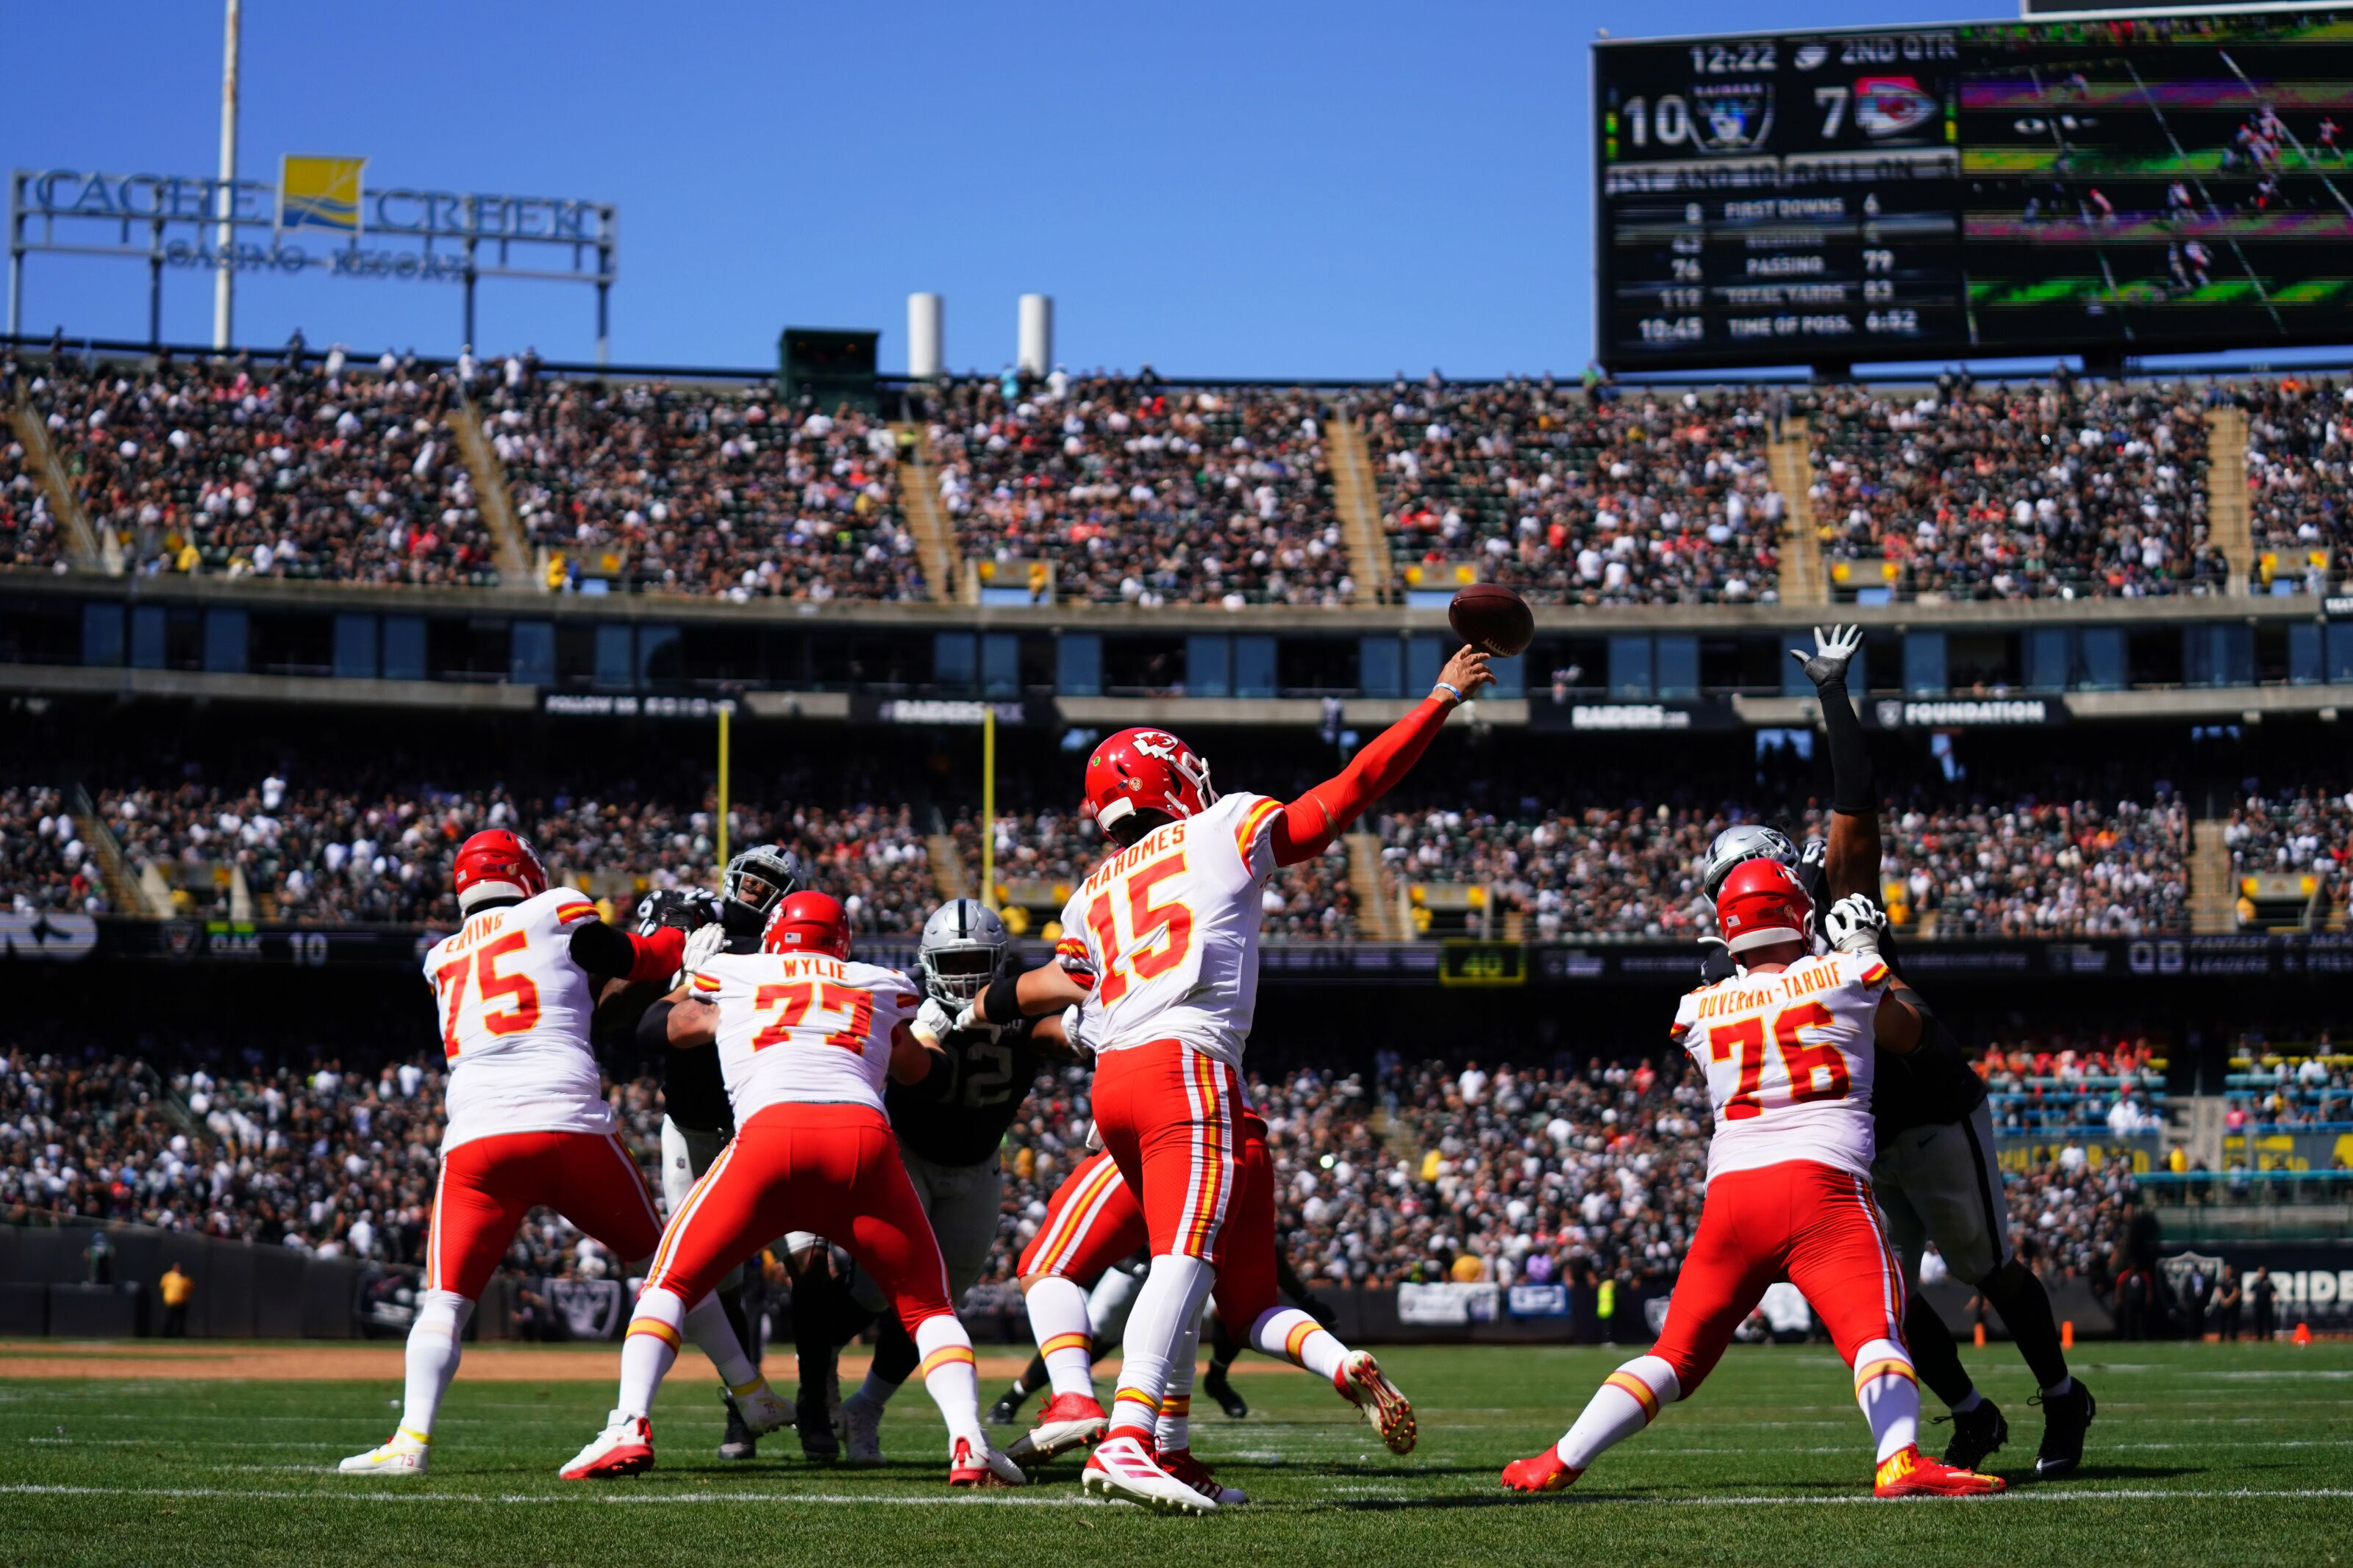 The Kansas City Chiefs have made the rest of the NFL boring